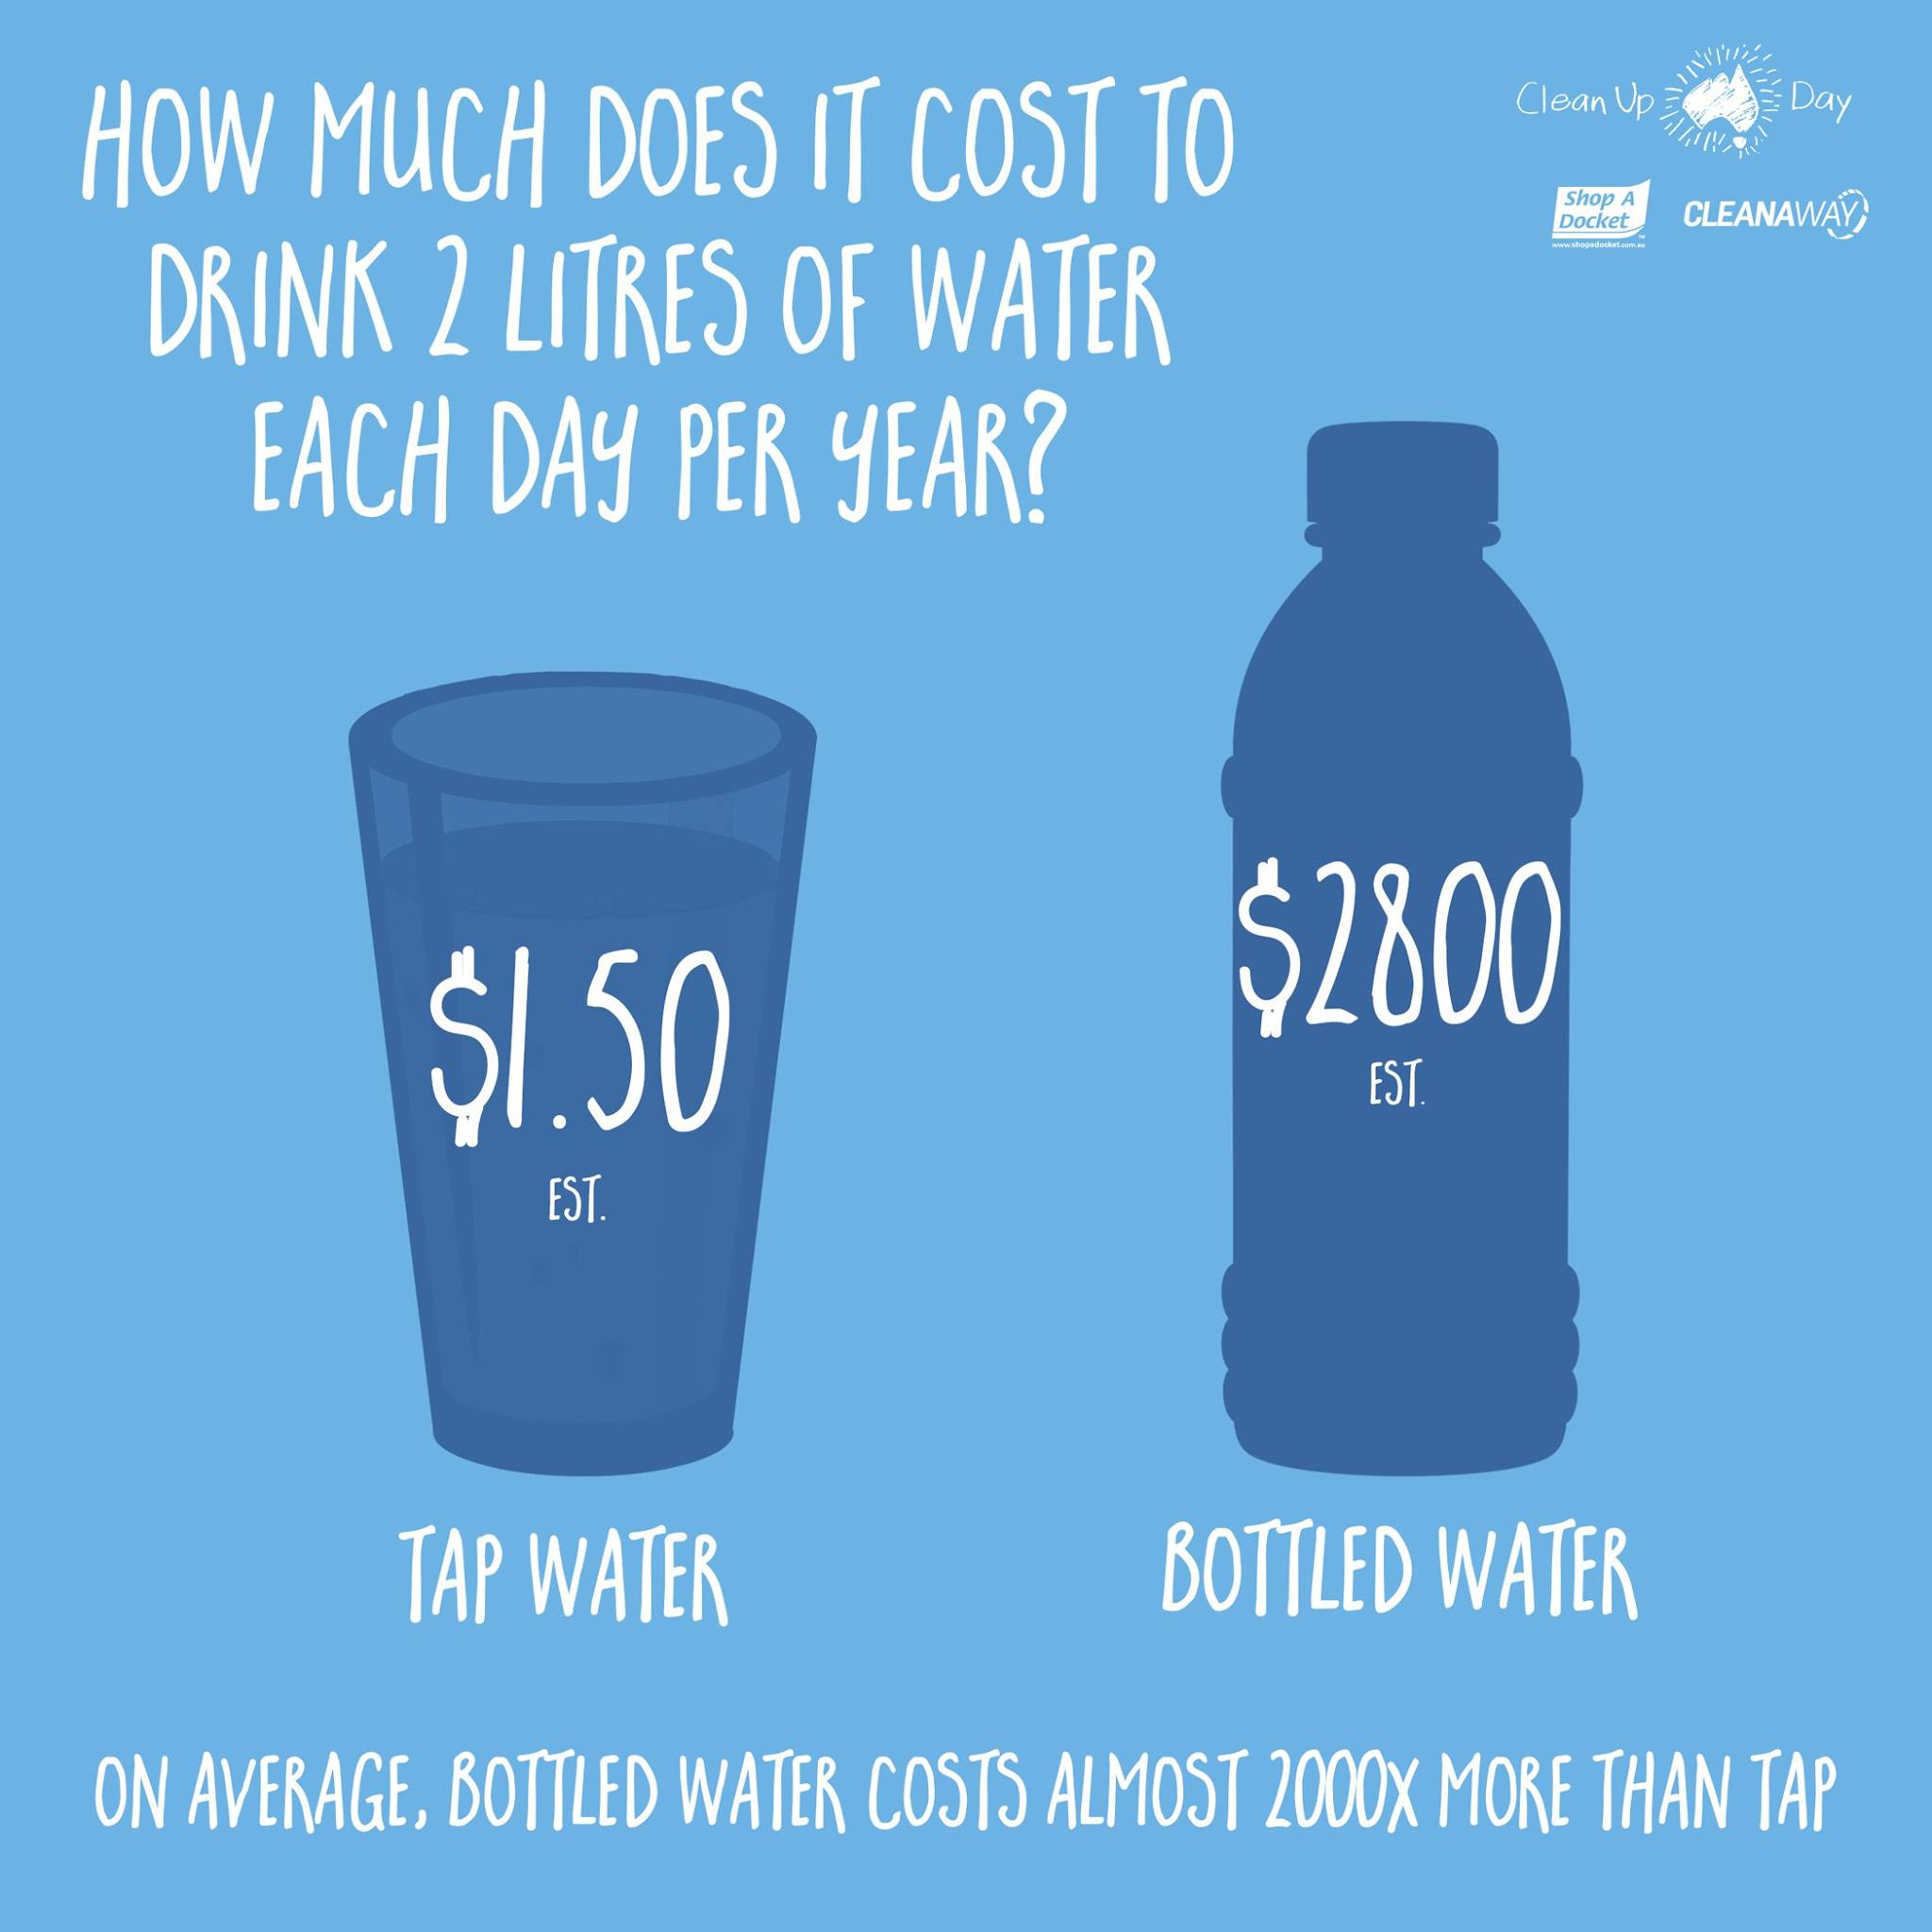 How much does it cost to drink 2 litres of water each day per year? On average, bottled water costs almost 2000x more than tap